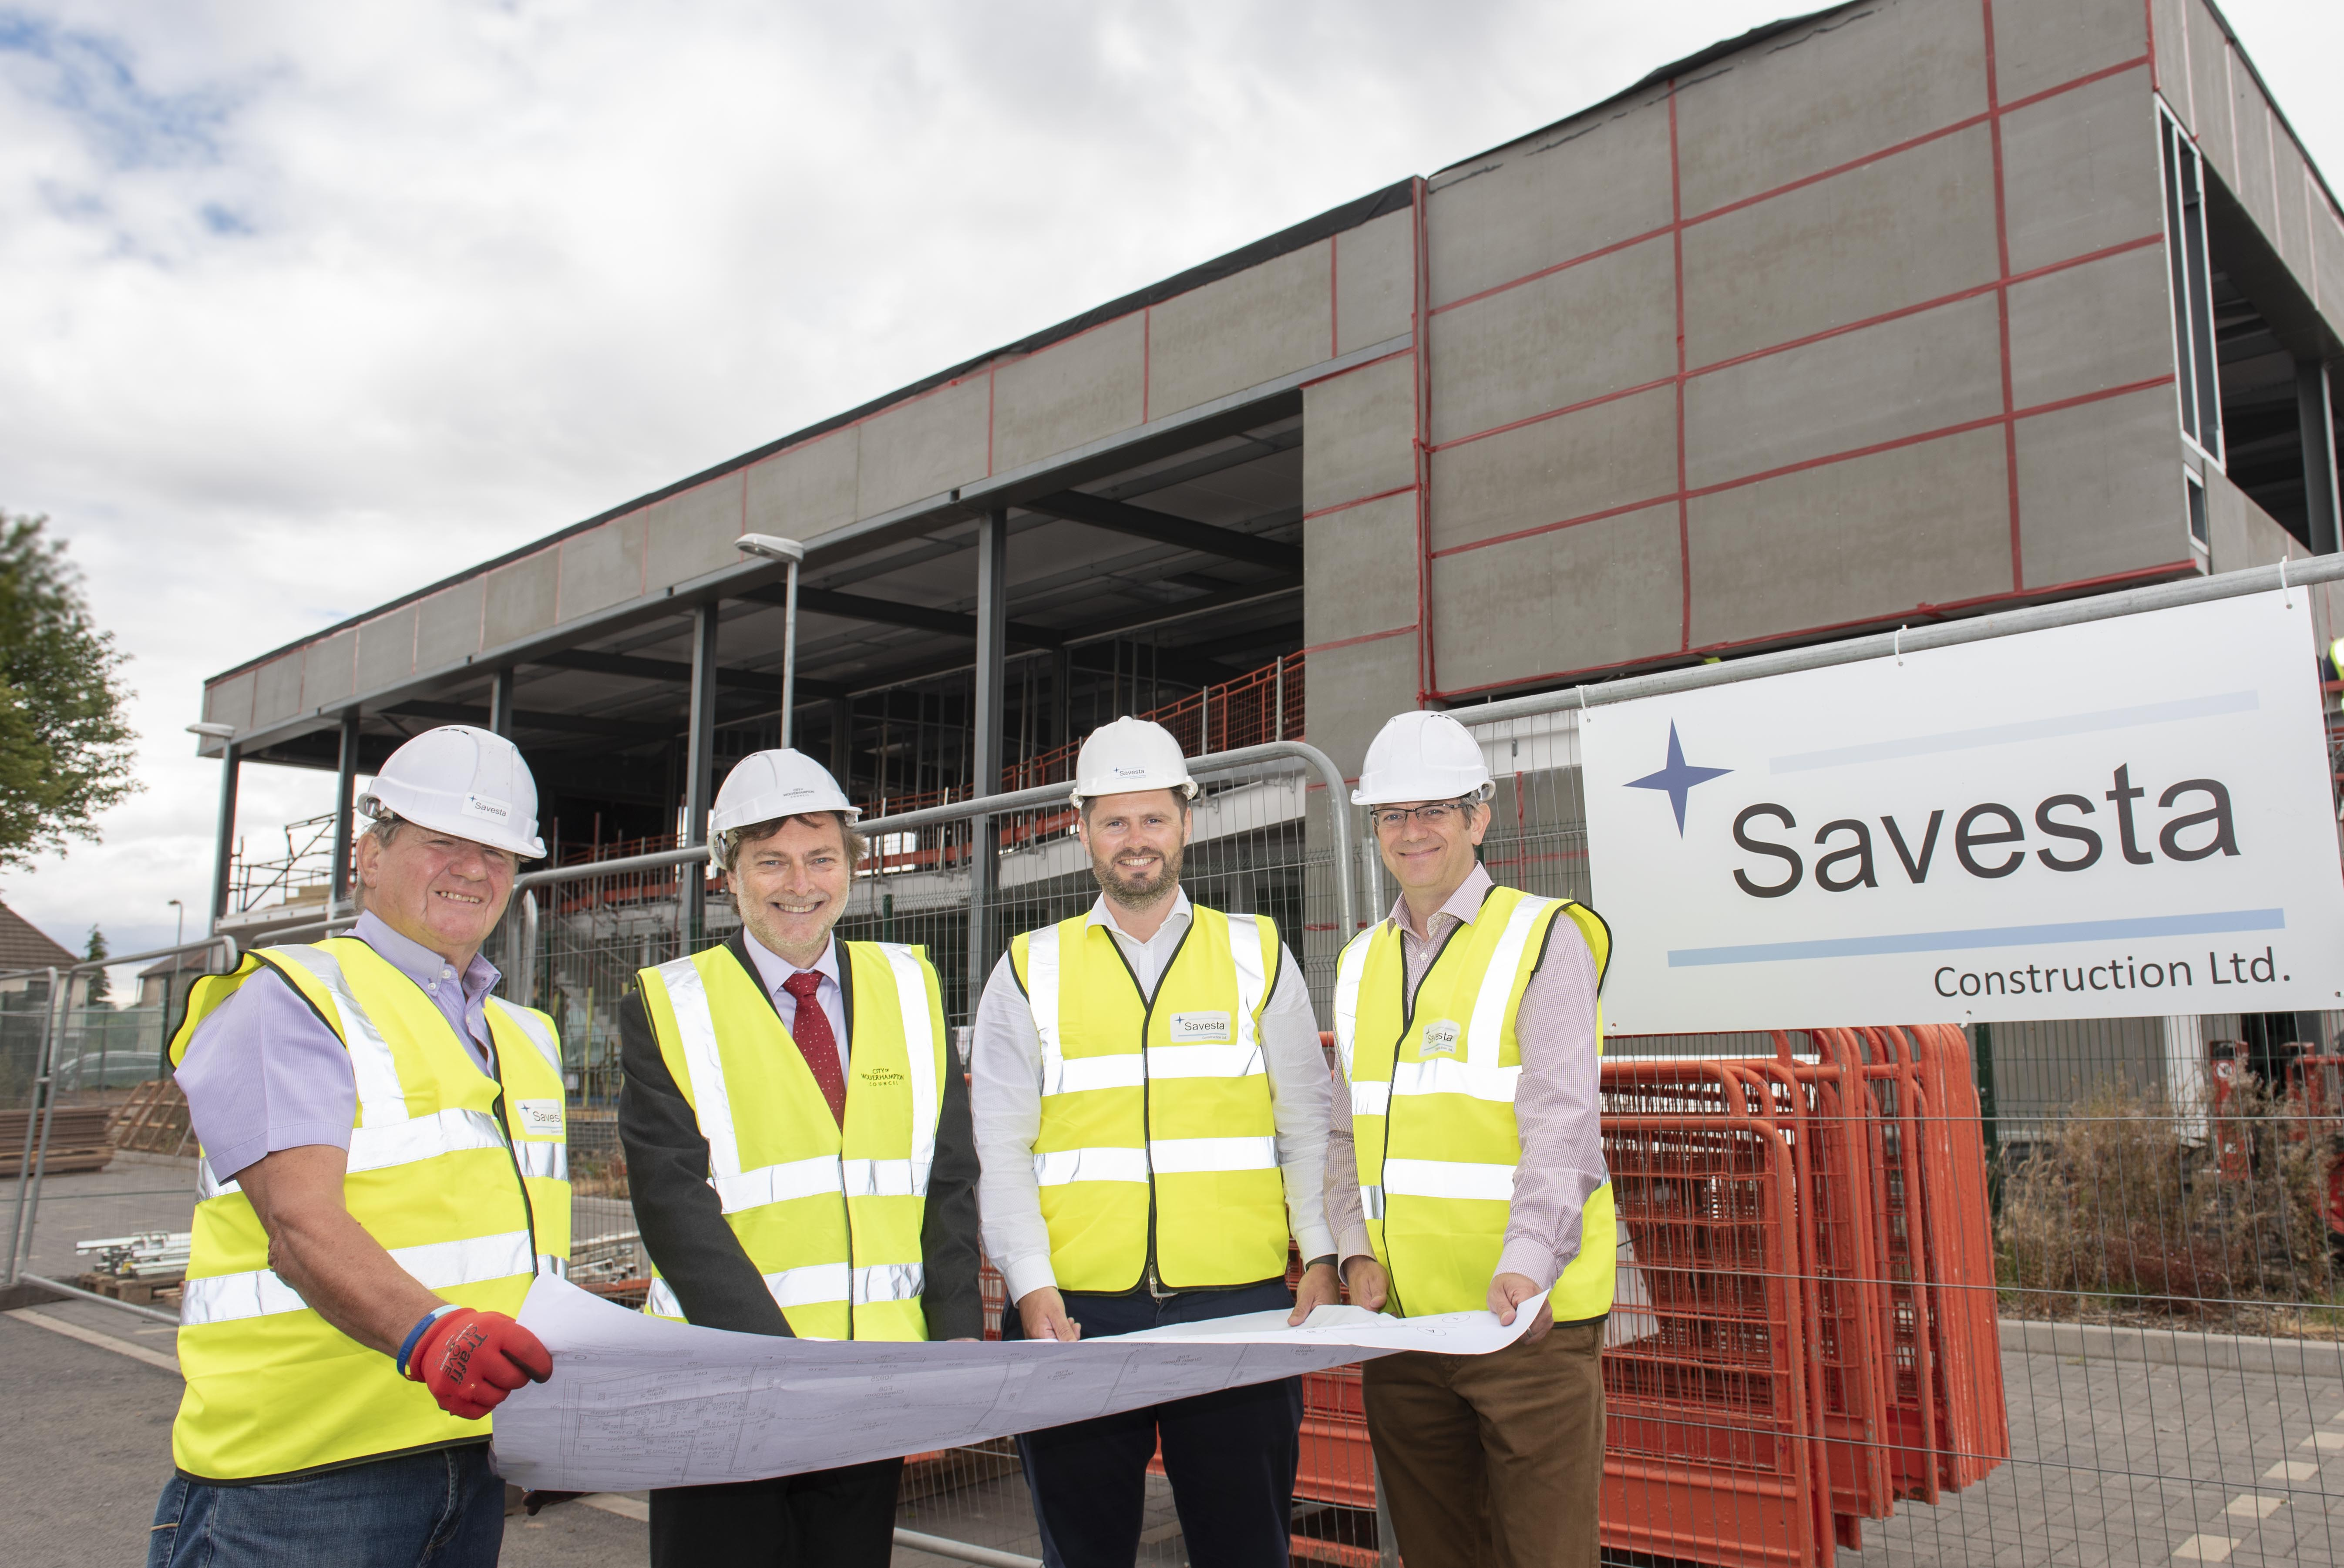 Lift-off for former Carillion employee's city company